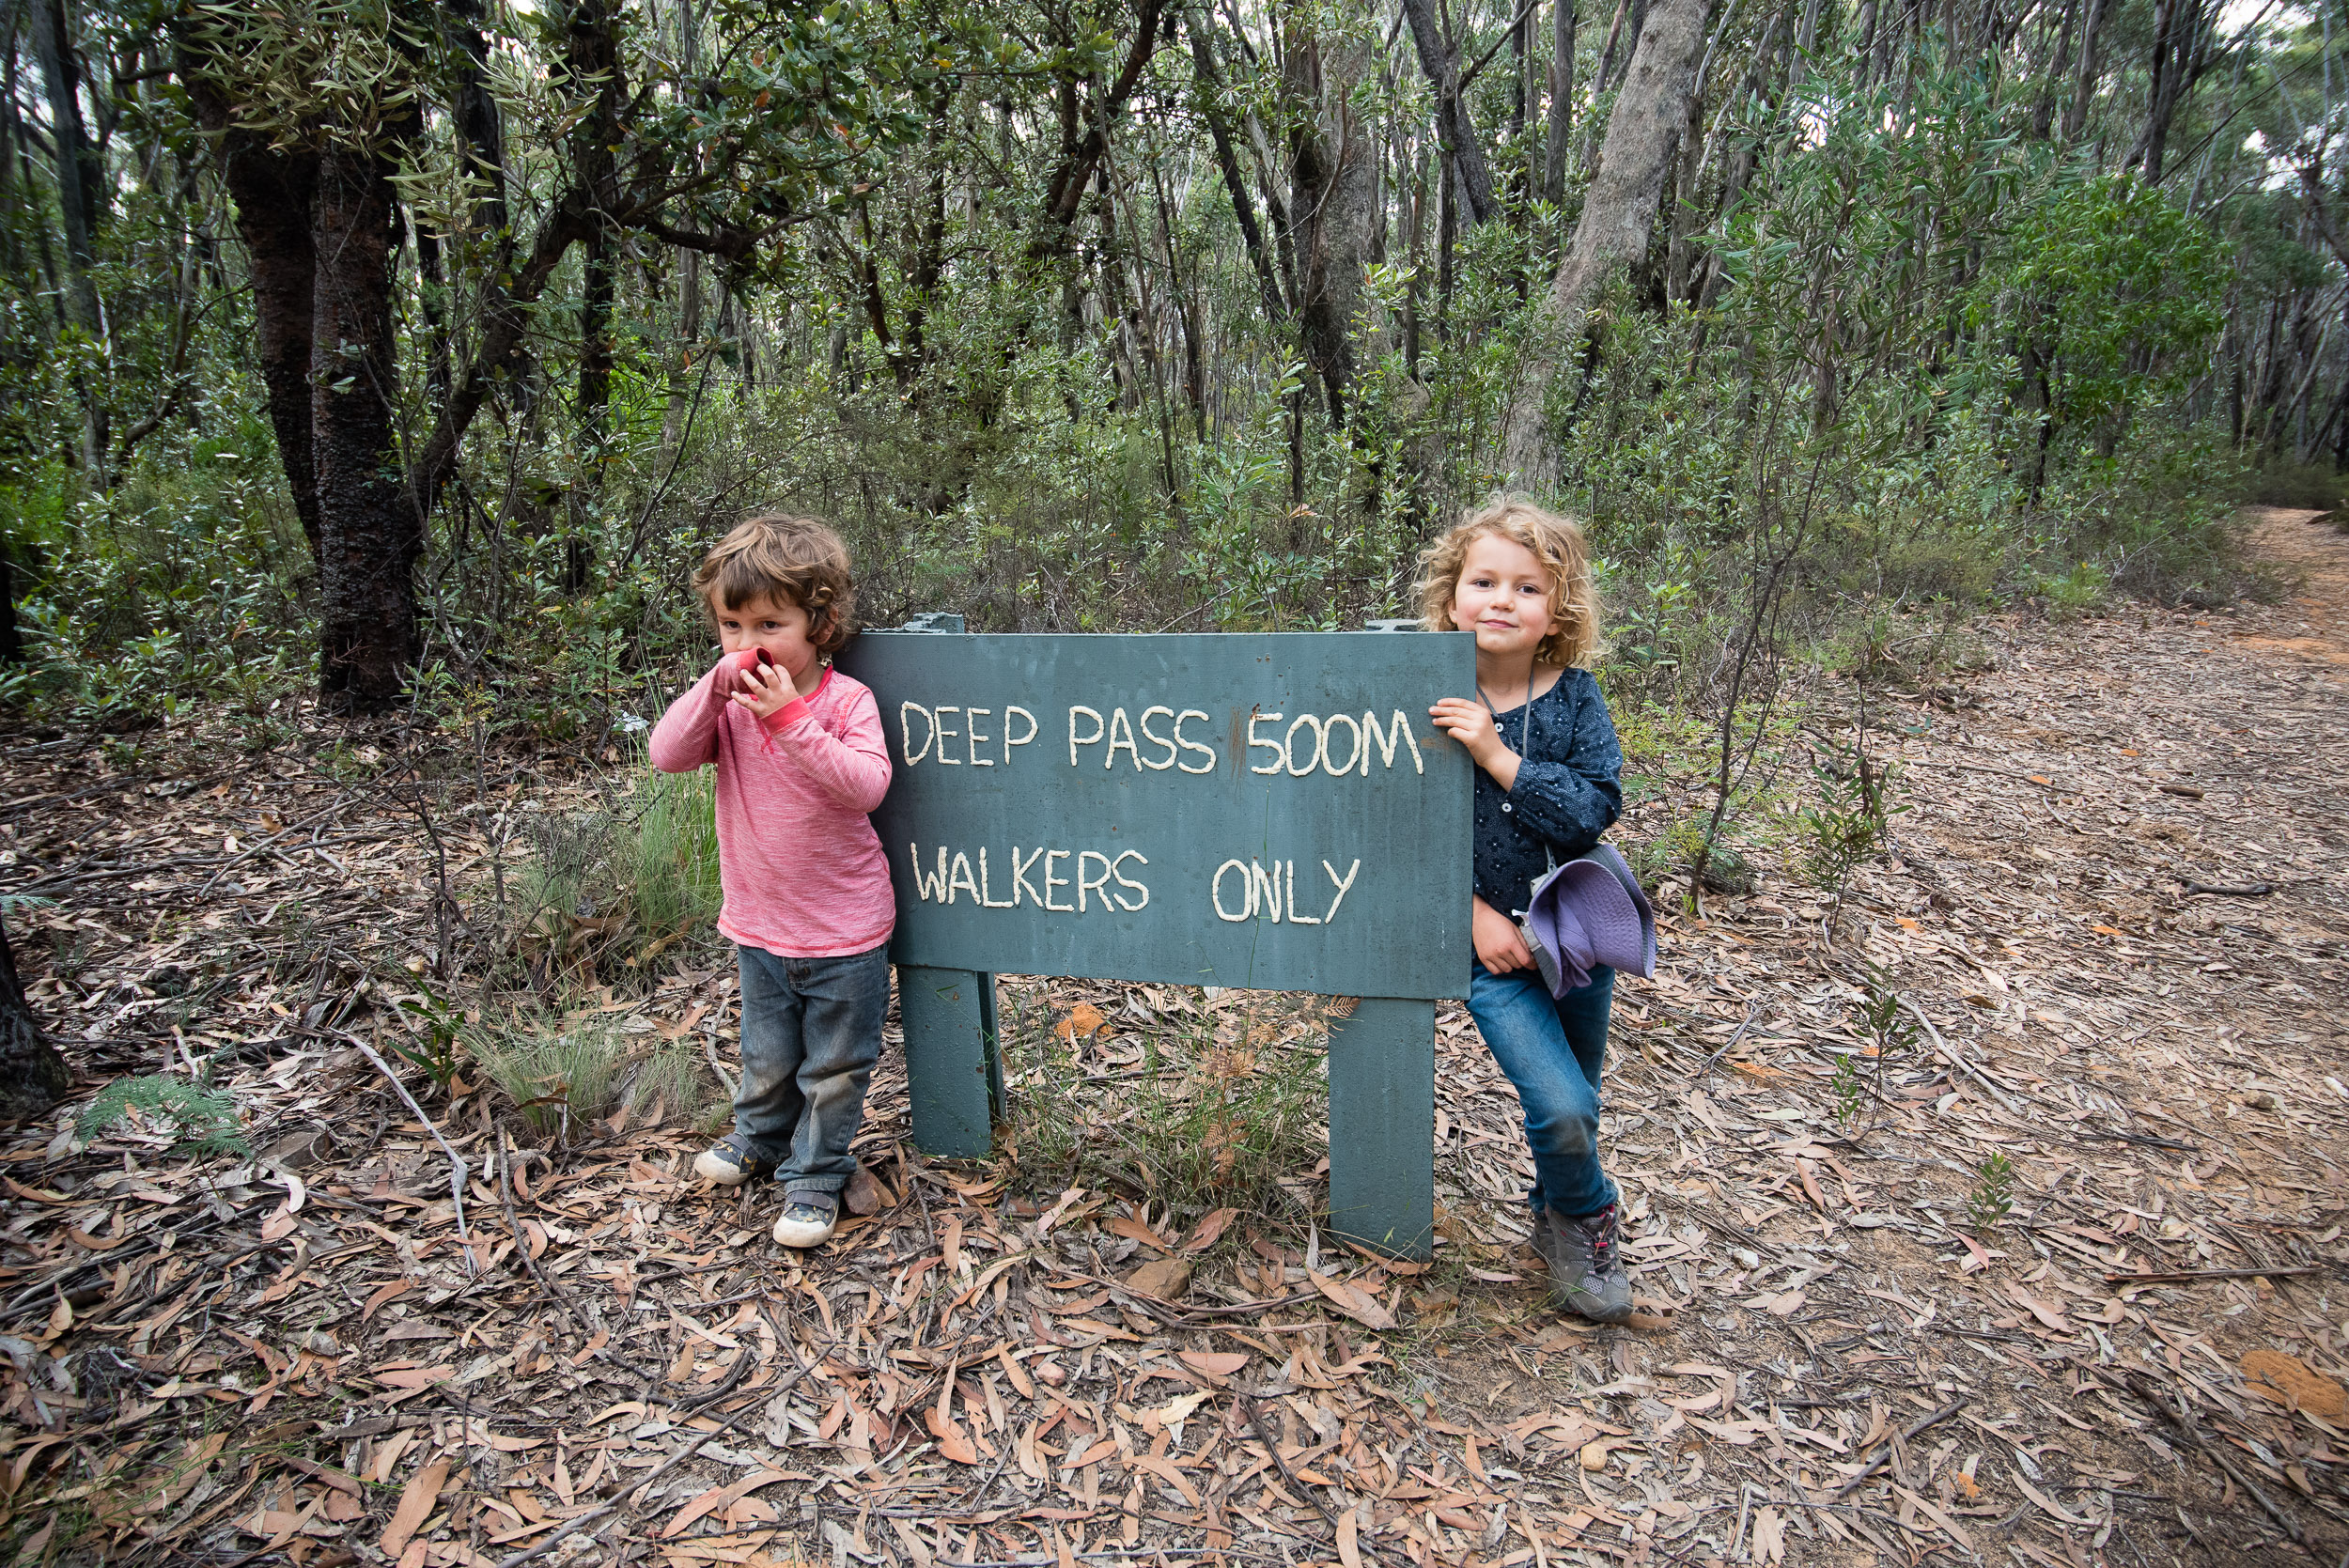 Puffed out, but happy - Finn and Holly at the end of our Deep Pass overnight camping trip. We are proud of you guys!